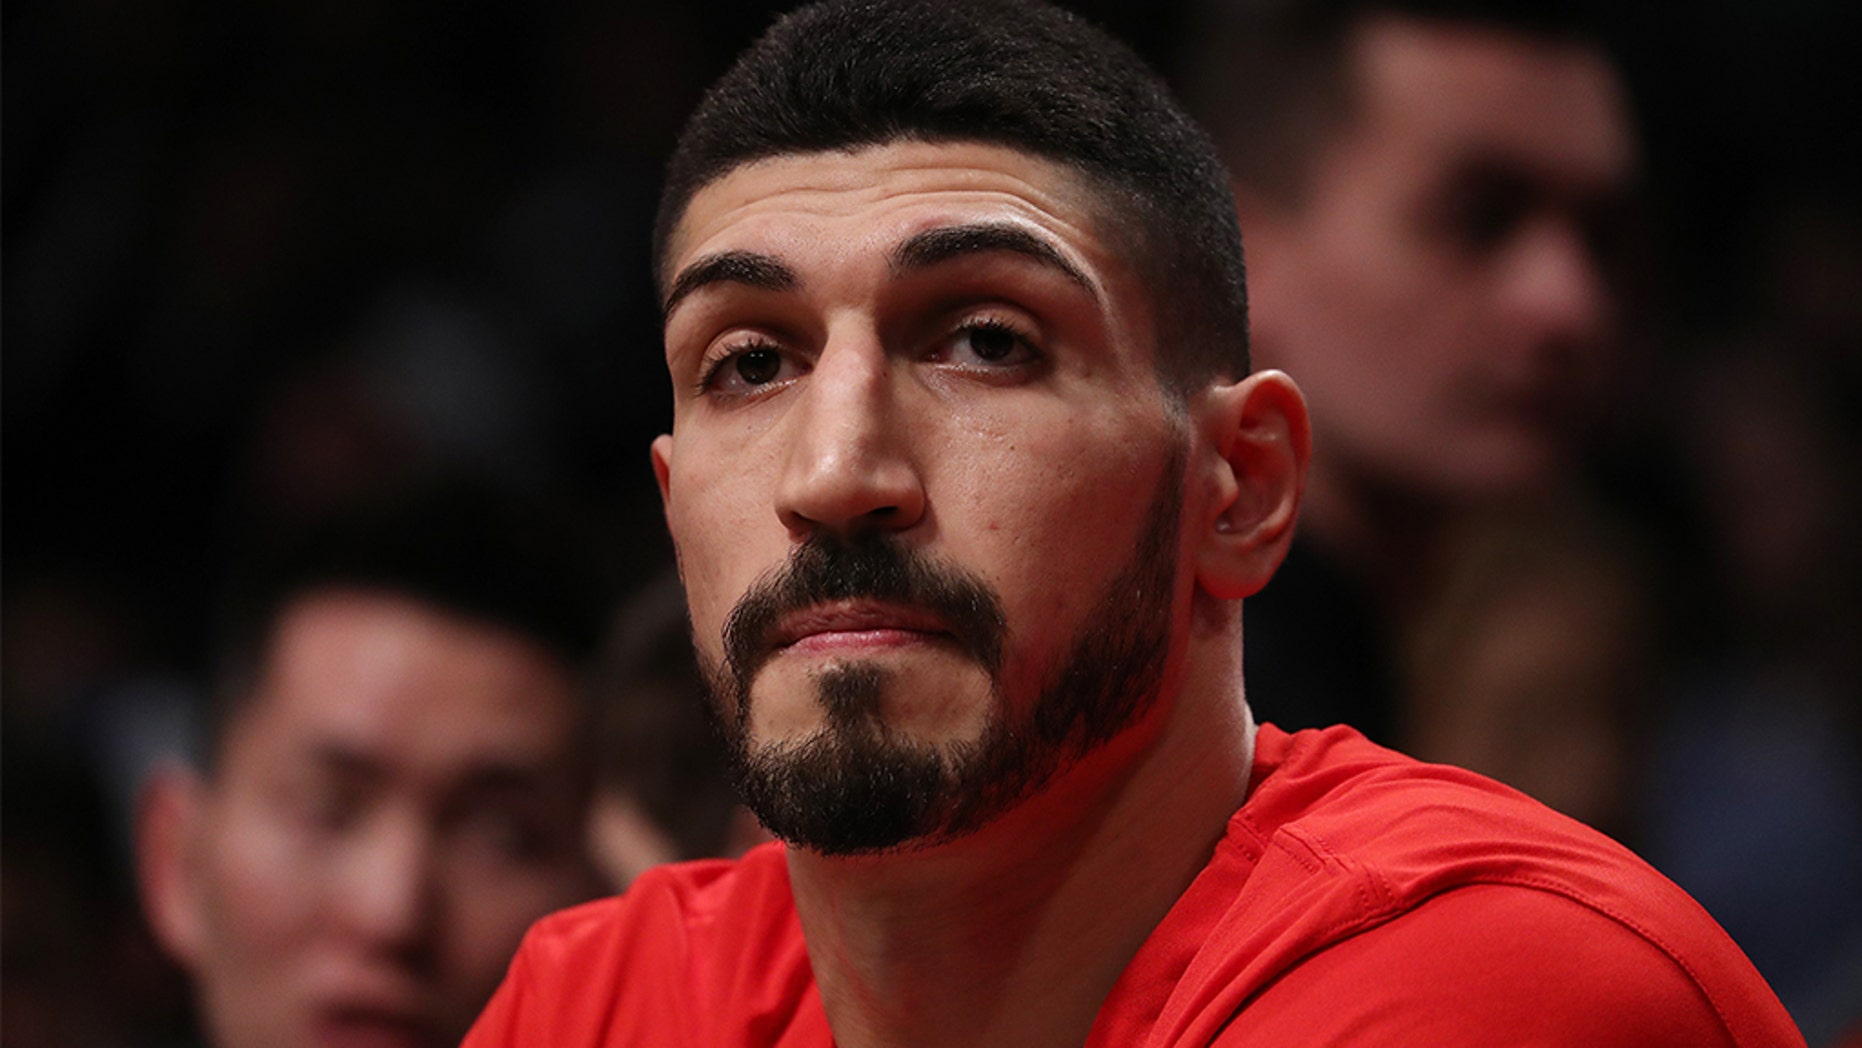 Enes Kanter of the Portland Trail Blazers looks on against the Brooklyn Nets during their game at Barclays Center on February 21, 2019 in New York City. (Photo by Al Bello/Getty Images)